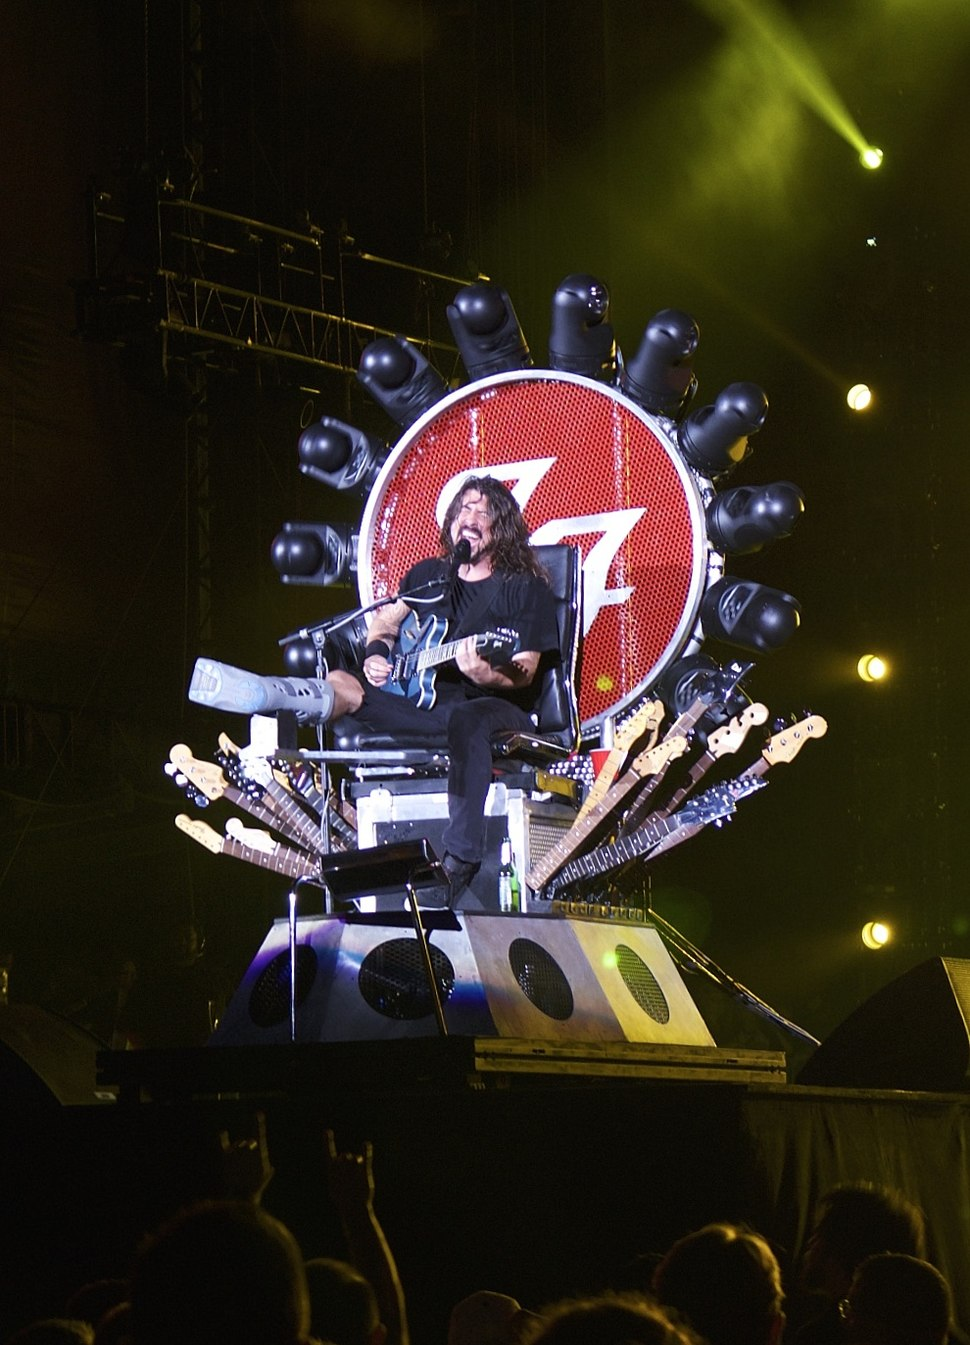 Foo Fighters Fenway Park 2015 (cropped)